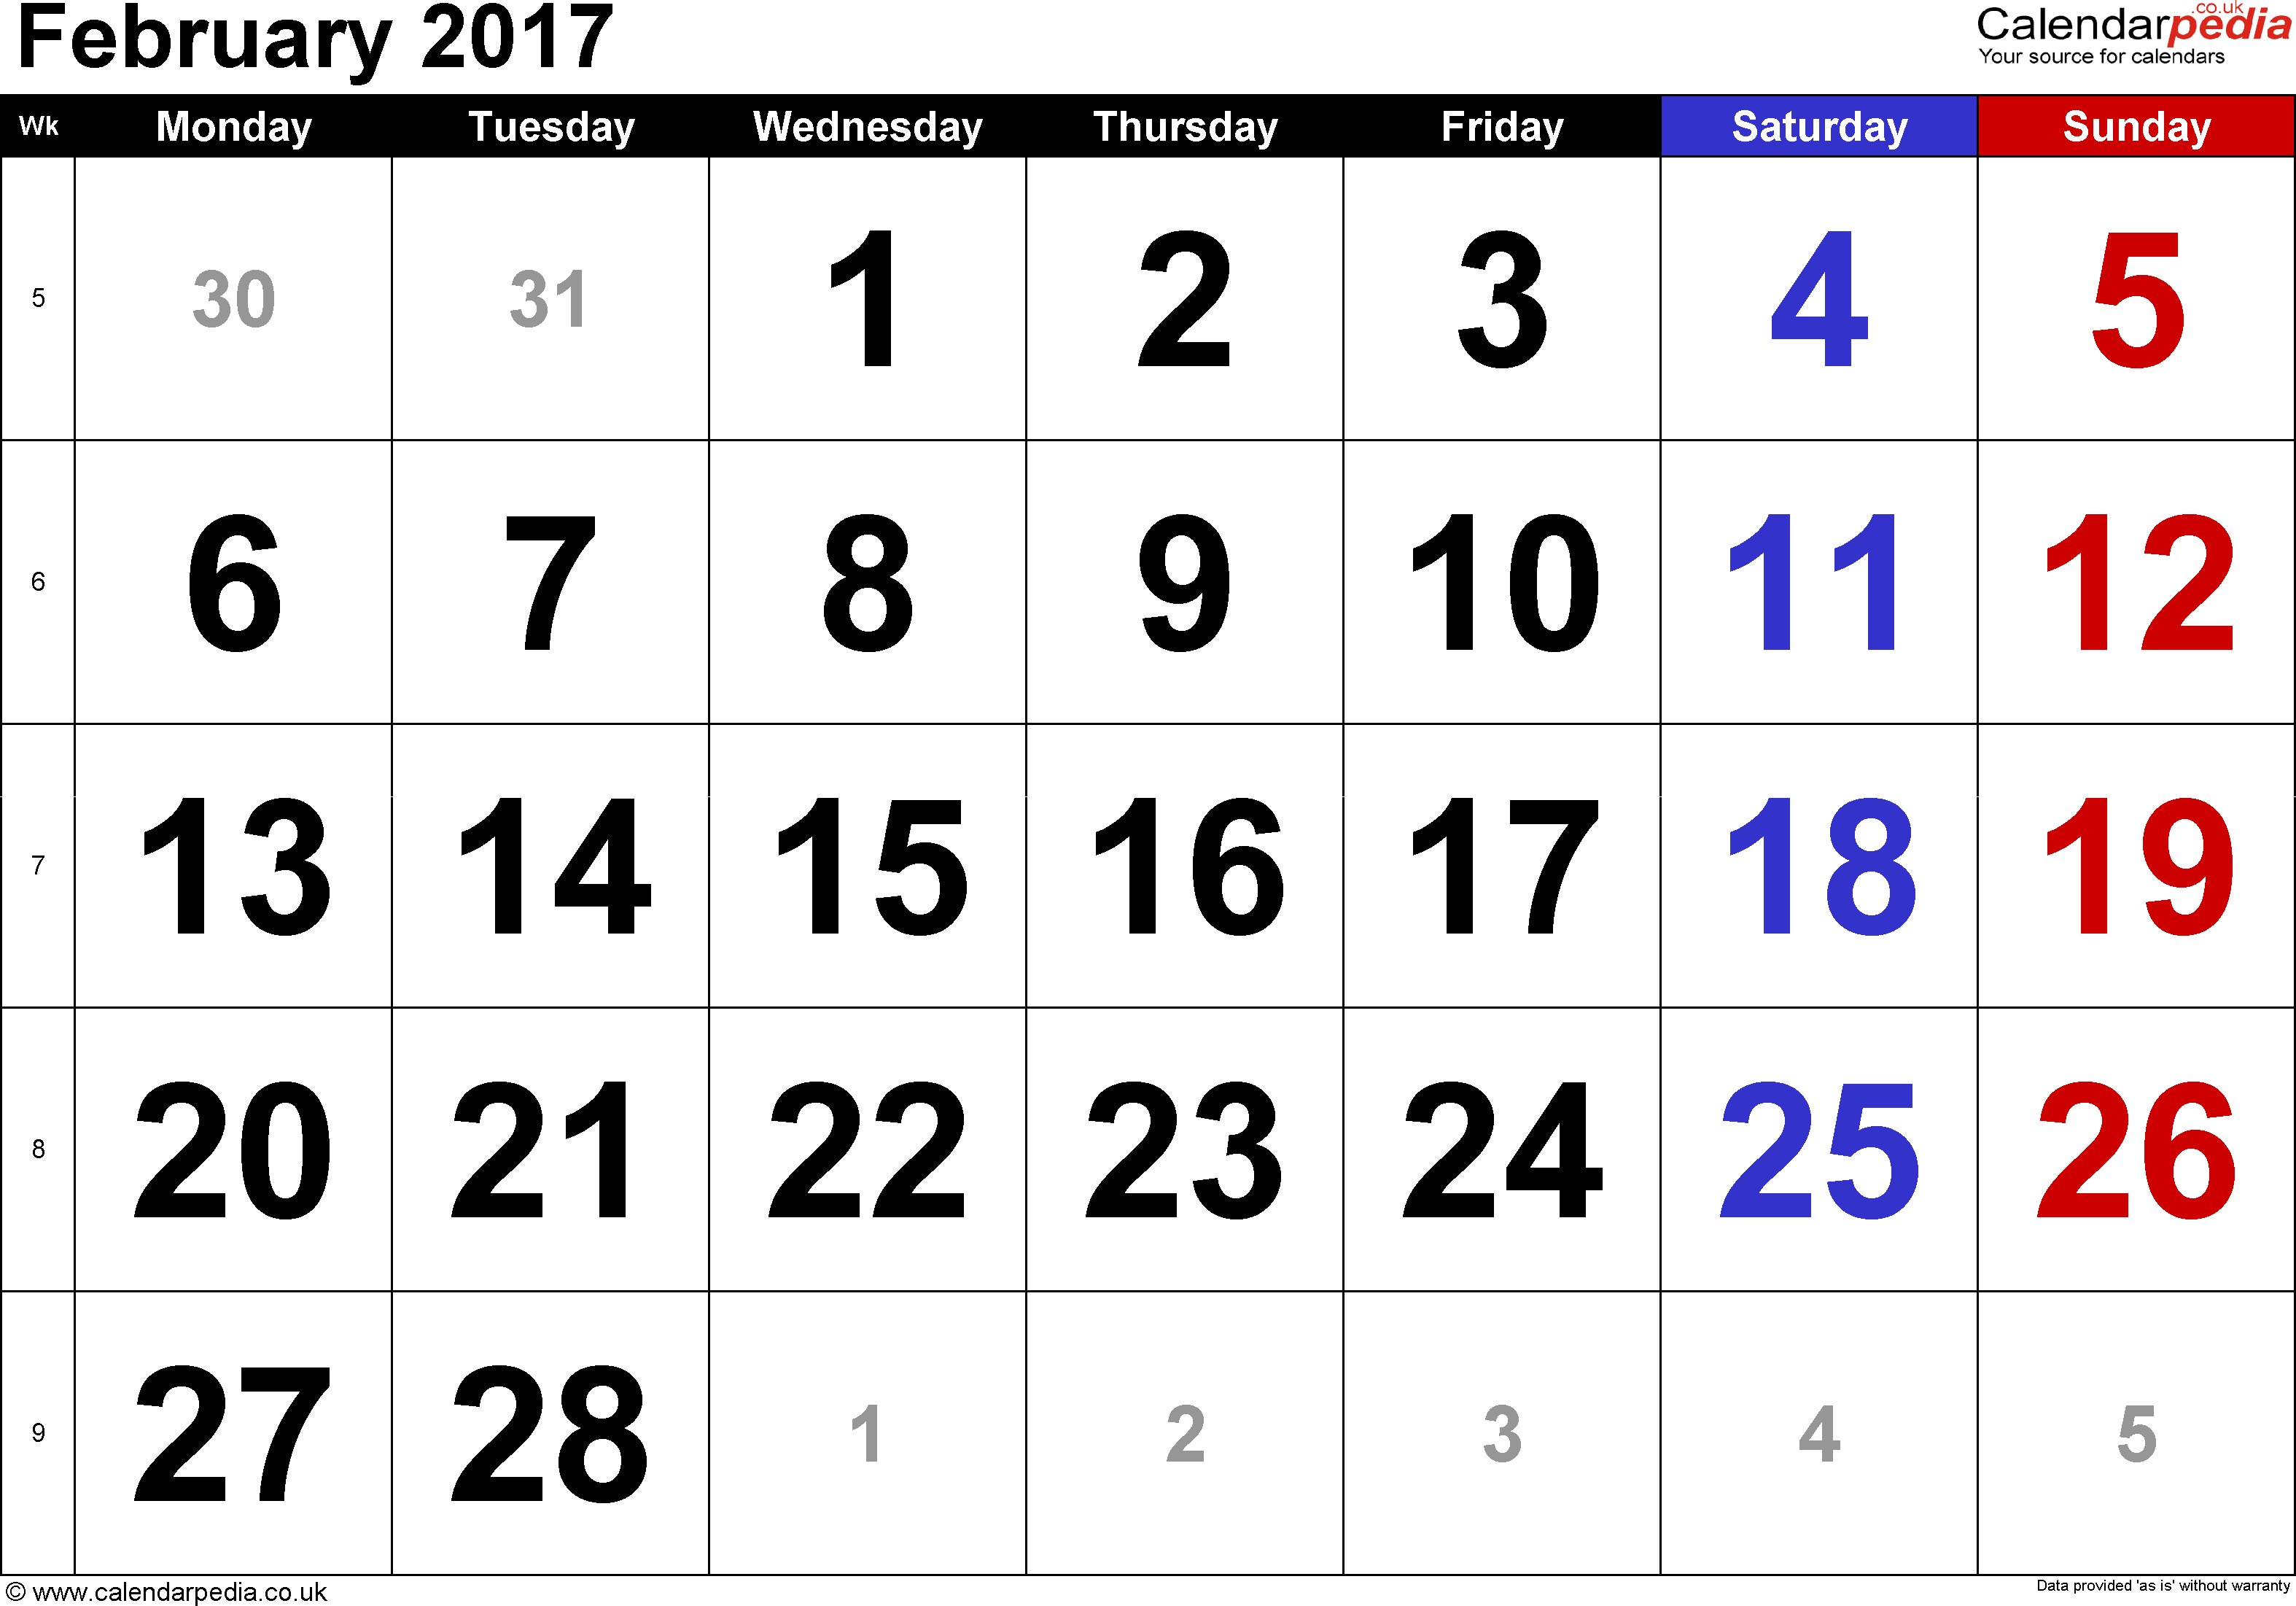 Calendar February 2017, landscape orientation, large numerals, 1 page, with UK bank holidays and week numbers